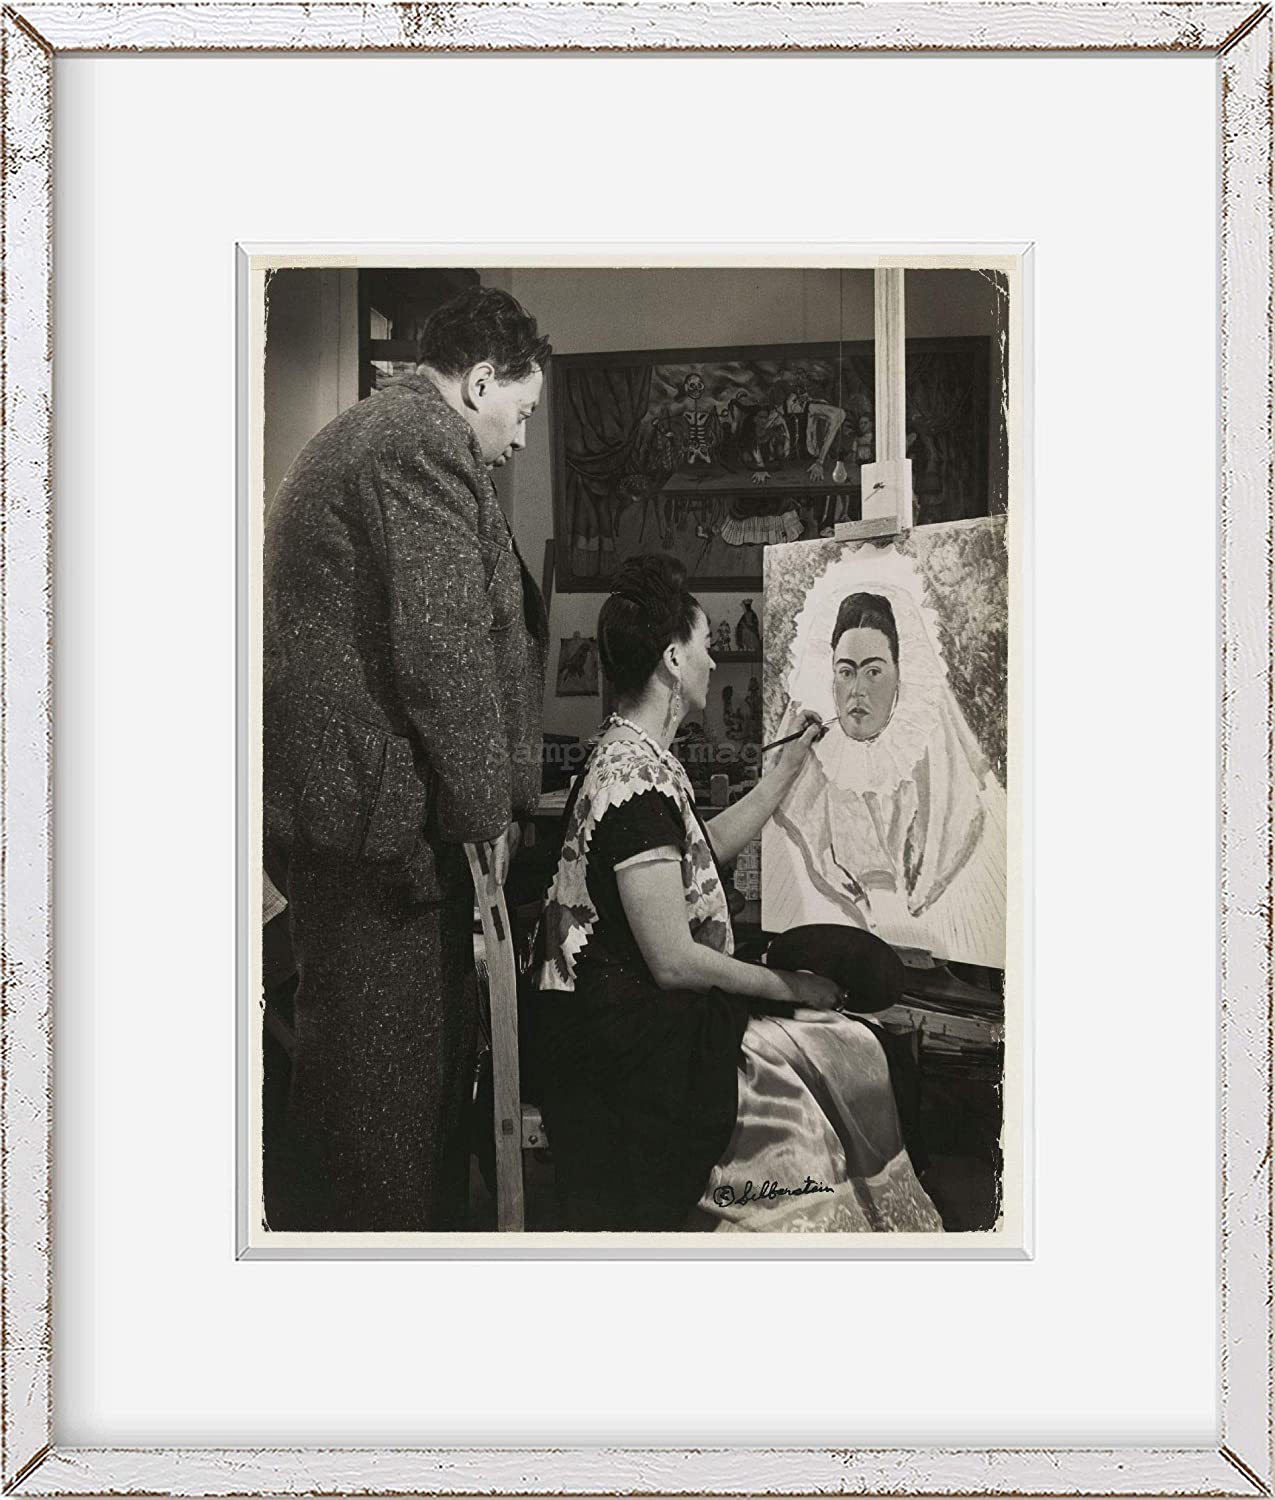 Diego Rovera,Rivera watching wife,Frida Kahlo,work,self,paint,Mexico City,1940